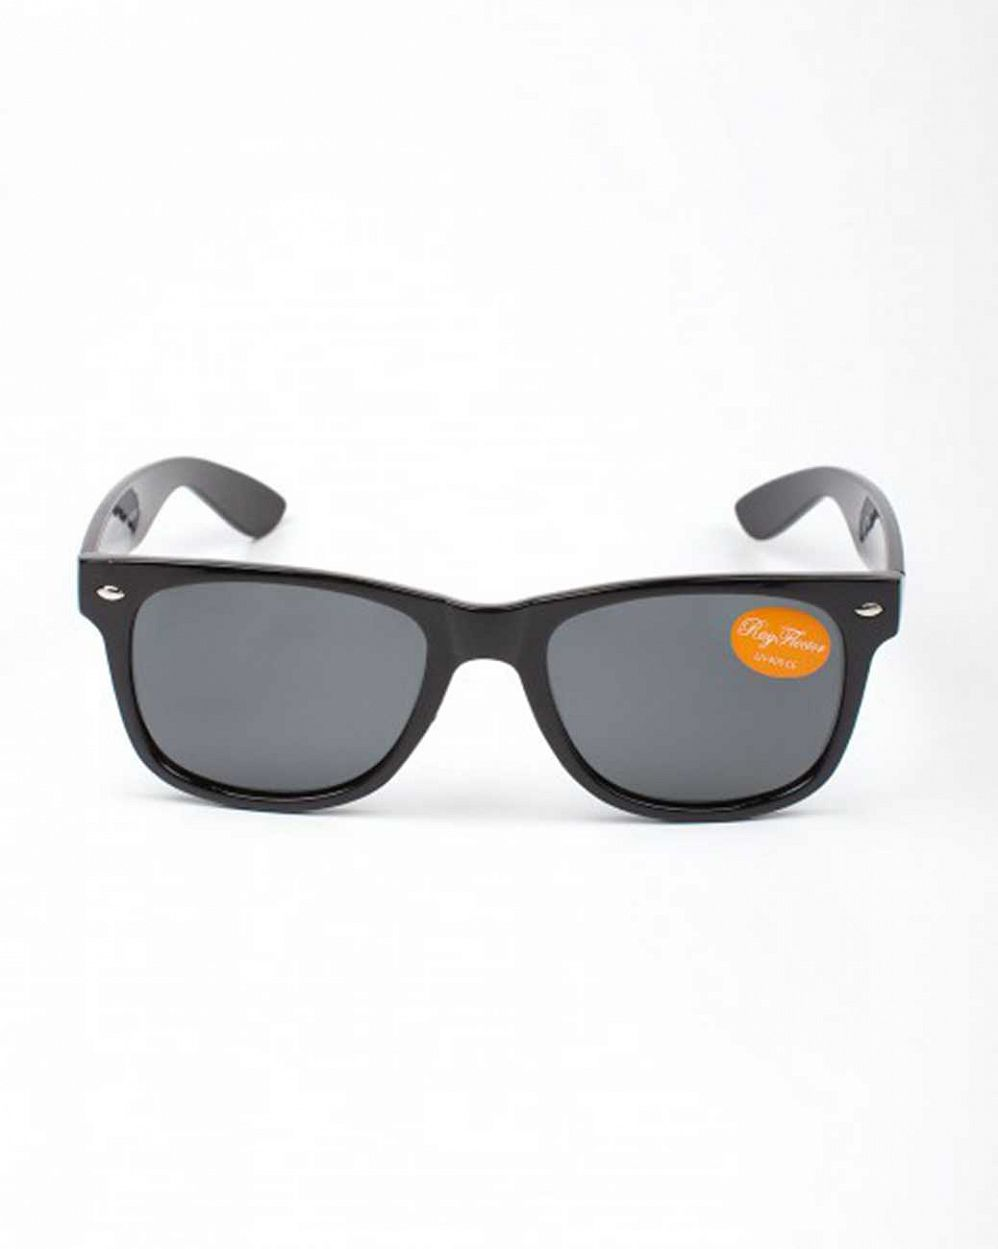 купить Очки Sunglasses Classic Modern Wayfarer Polarized Black в Москве